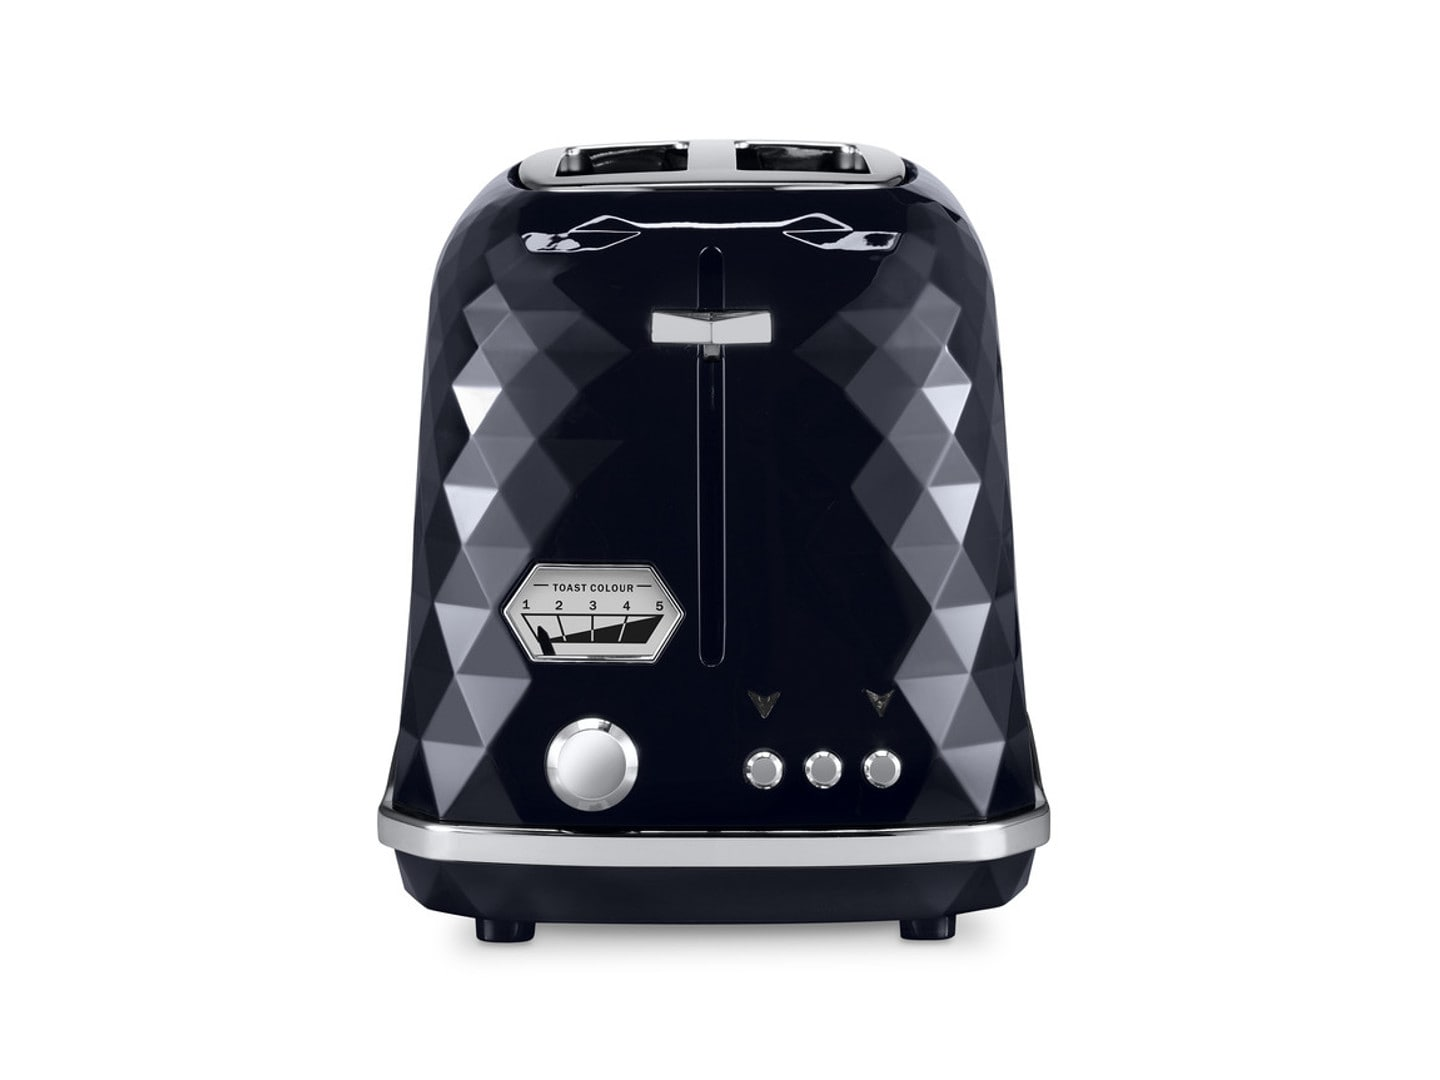 DeLonghi Brillante Exclusive 2 Slice Toaster Black CTJX2103.BK